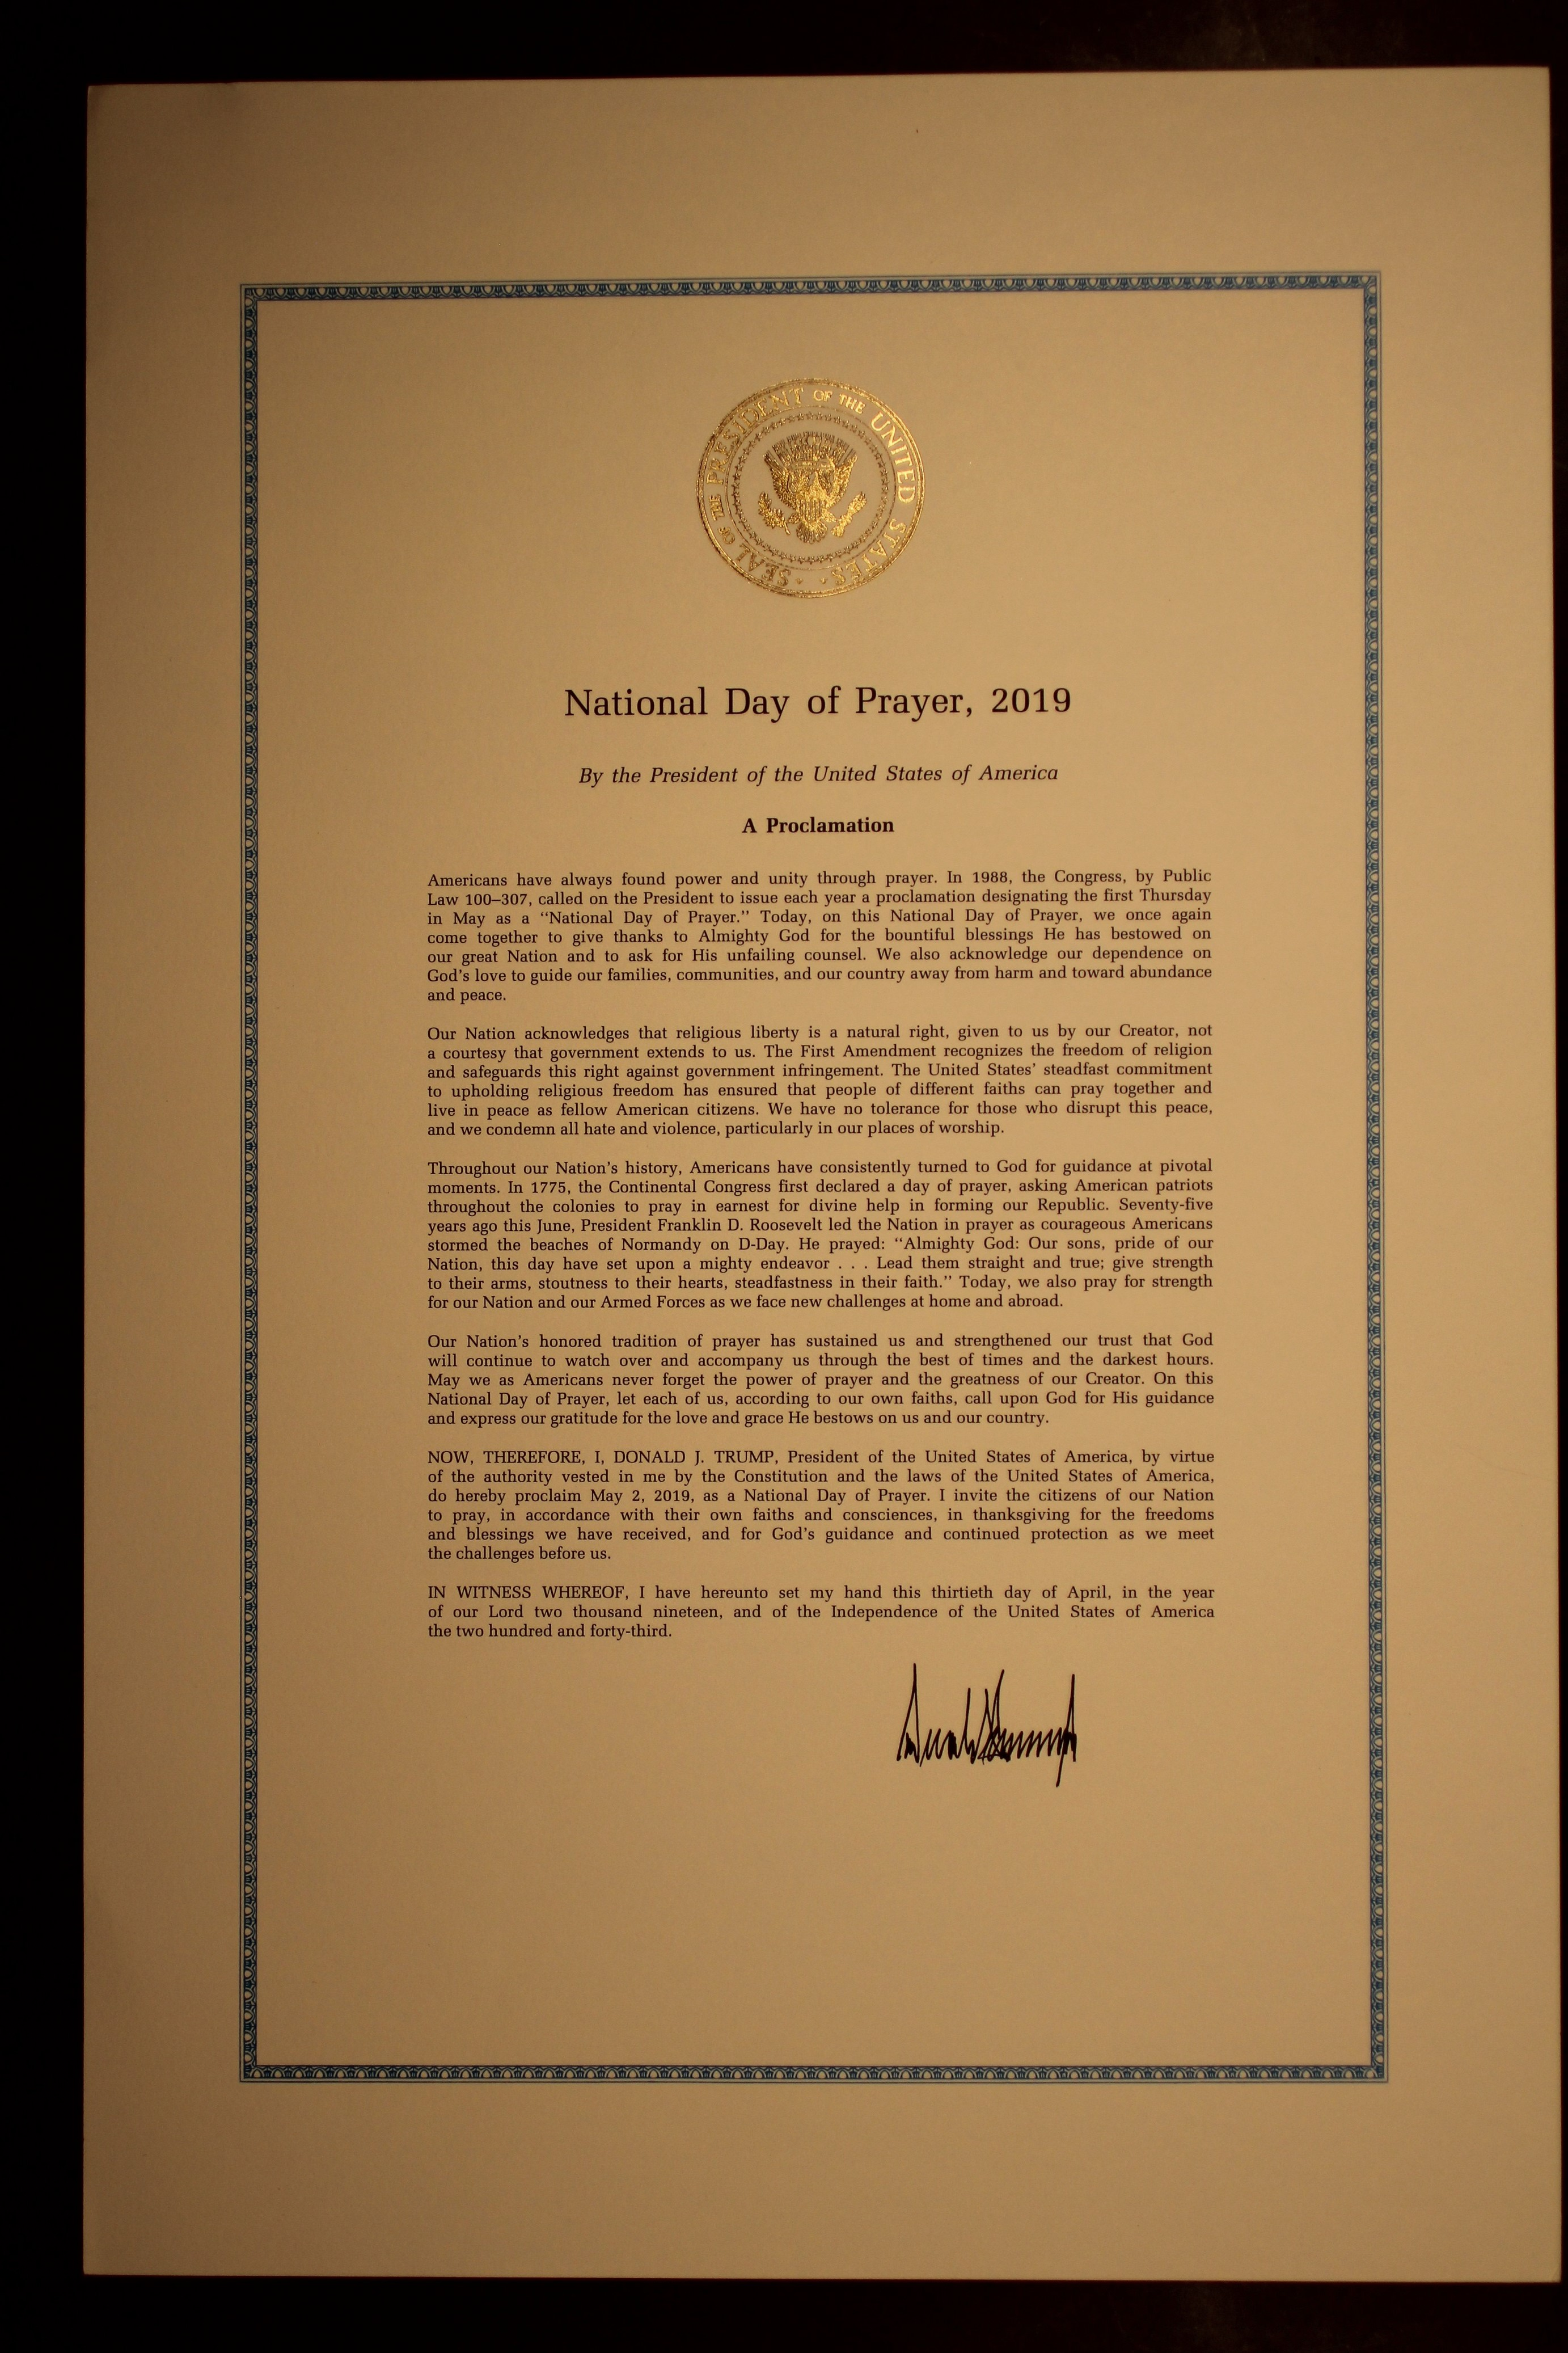 2019 National Day of Prayer Proclamation